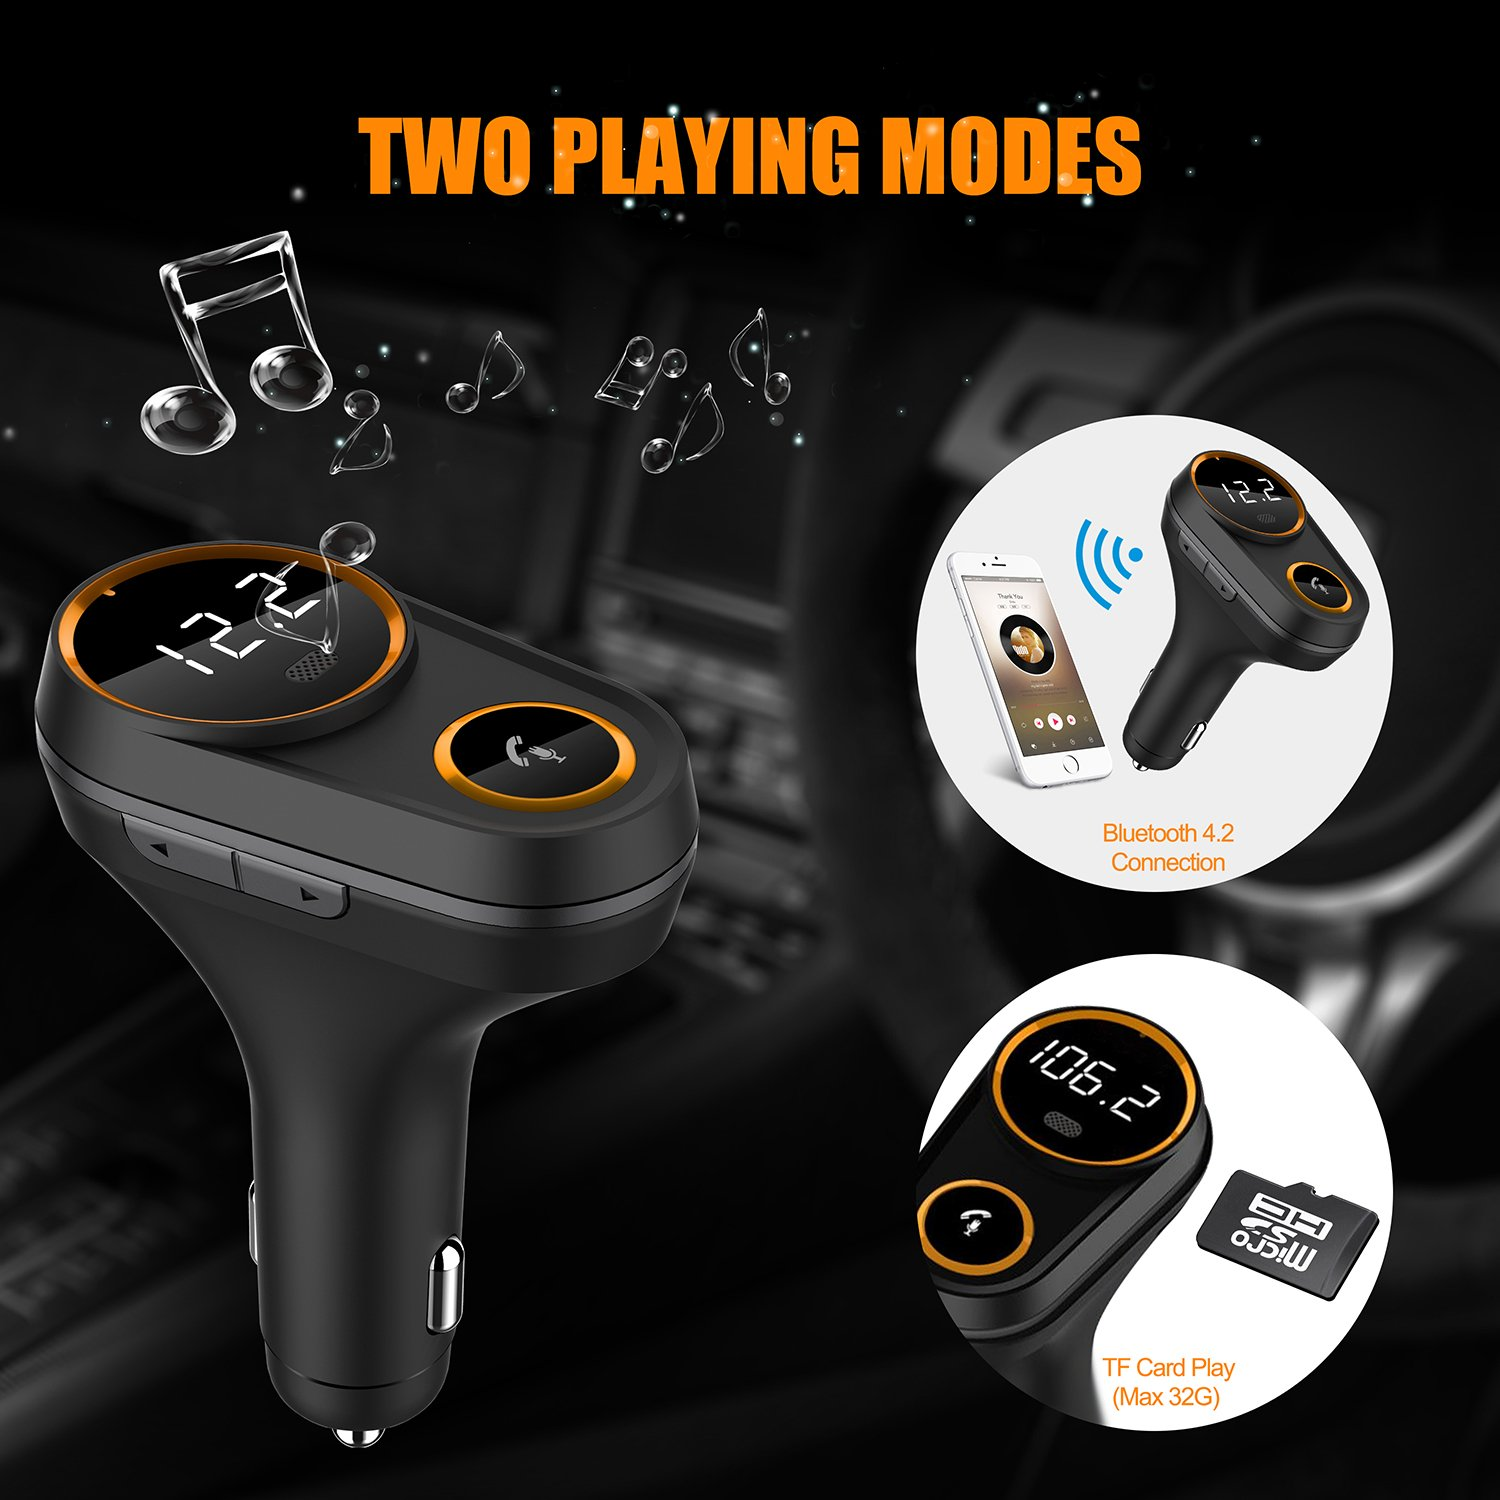 Bluetooth FM Transmitter for Car, Yurchuke 2018 Stylish Design Wireless Bluetooth FM Radio Adapter Car Kit with Hands-Free Calling, 5V/4.8A Concealled Dual USB Charging Ports for iPhone iPod iPad ect by Yurchuke (Image #5)